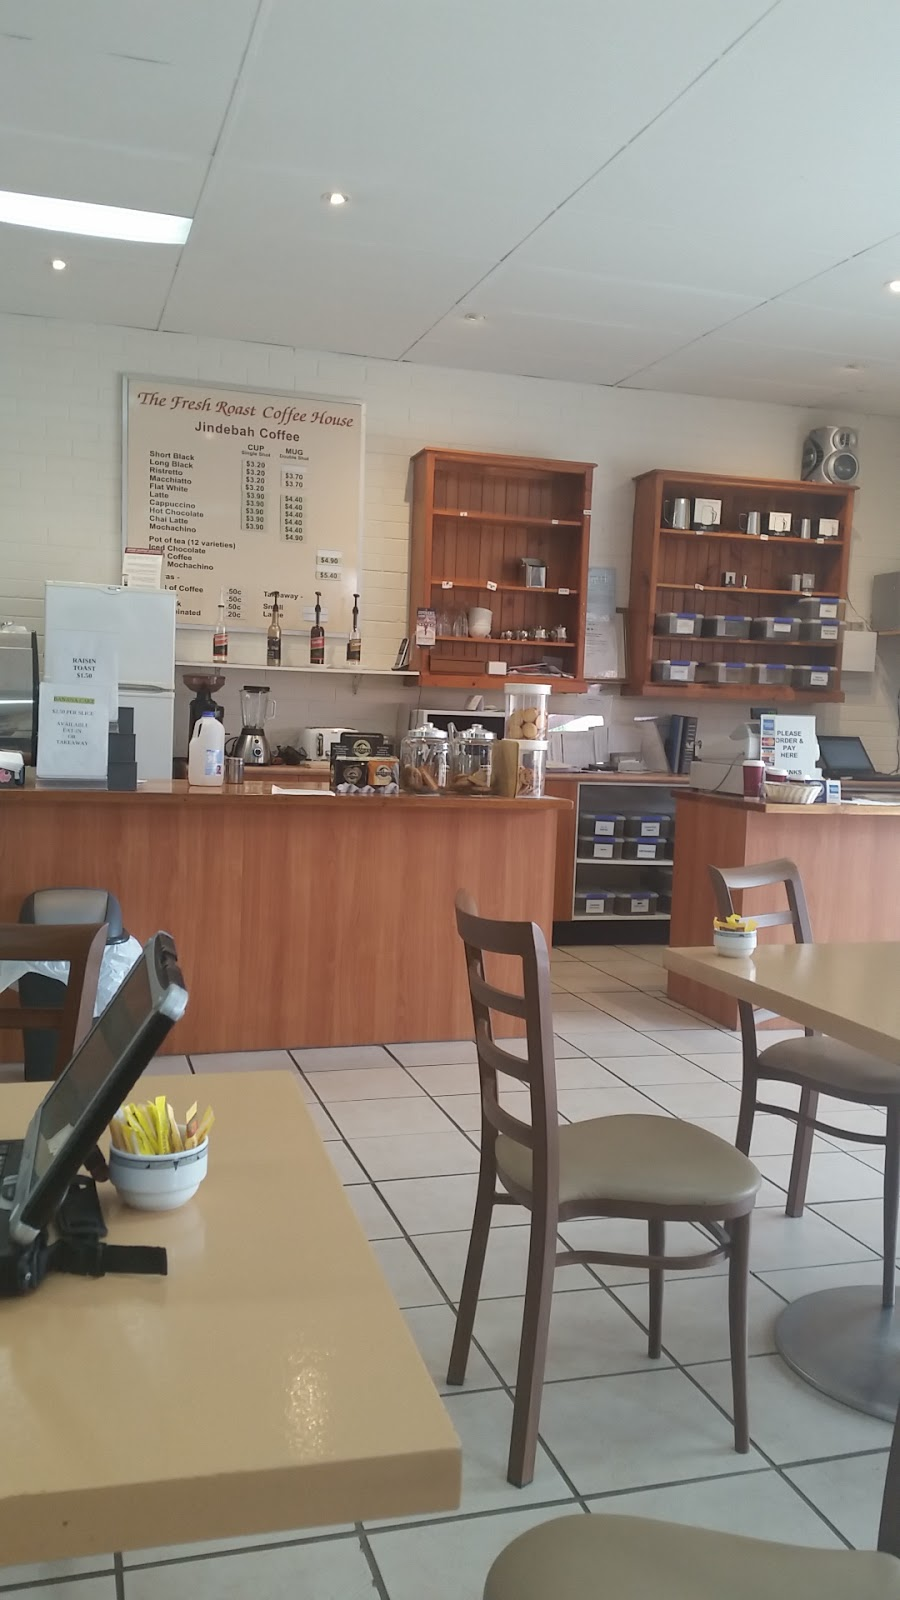 Jindebah Coffee   cafe   5/48 Sandford St, Mitchell ACT 2911, Australia   0262557300 OR +61 2 6255 7300